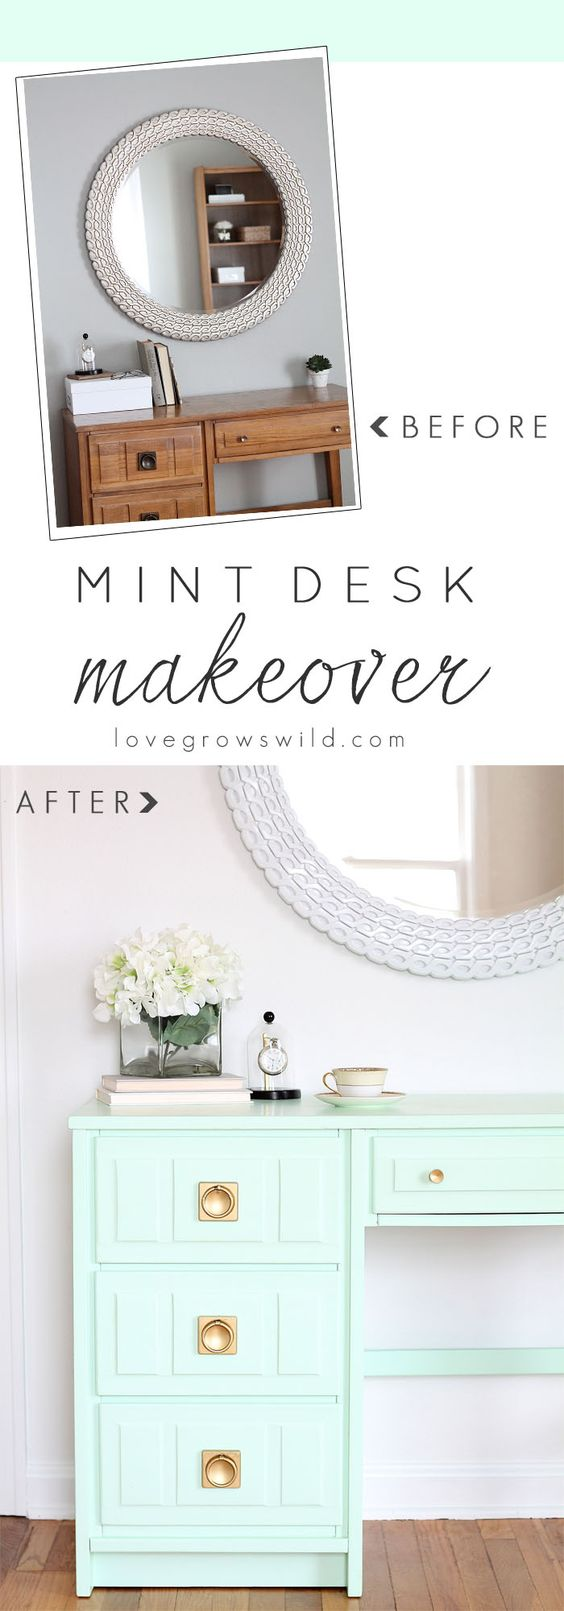 Mint Desk Makeover